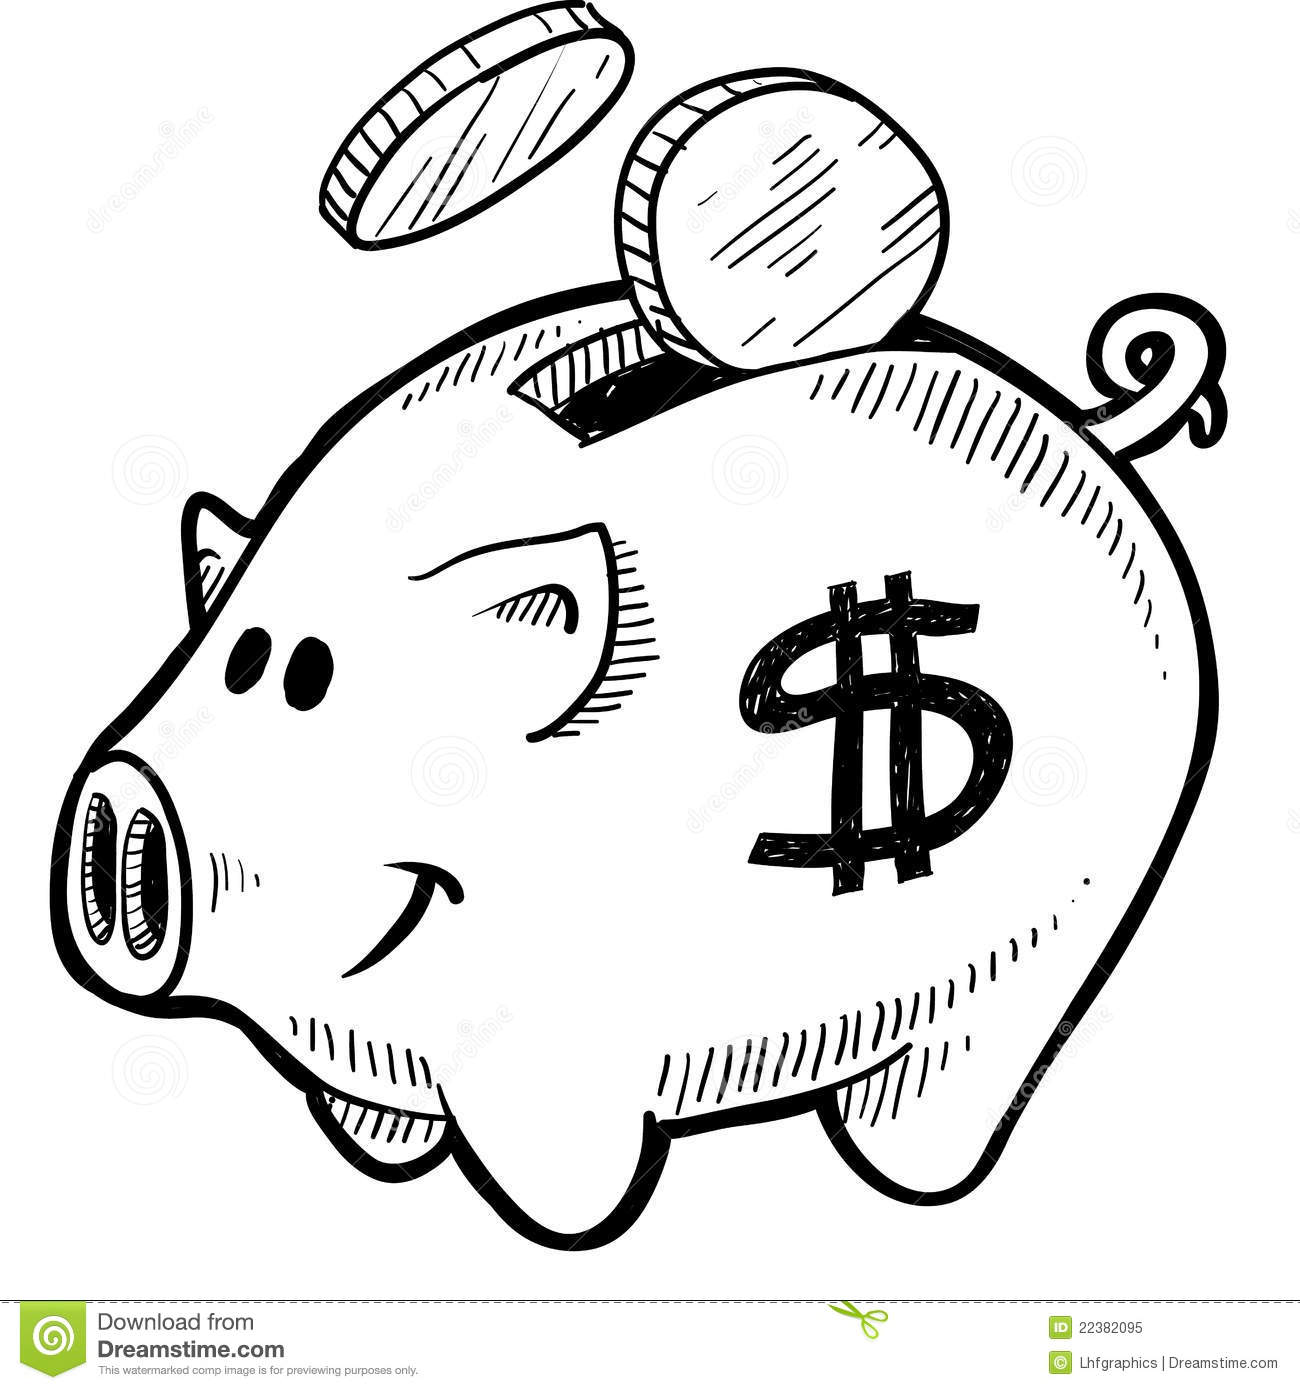 Black and white piggy bank clipart clipart black and white library Piggy bank clipart black and white - ClipartFest clipart black and white library